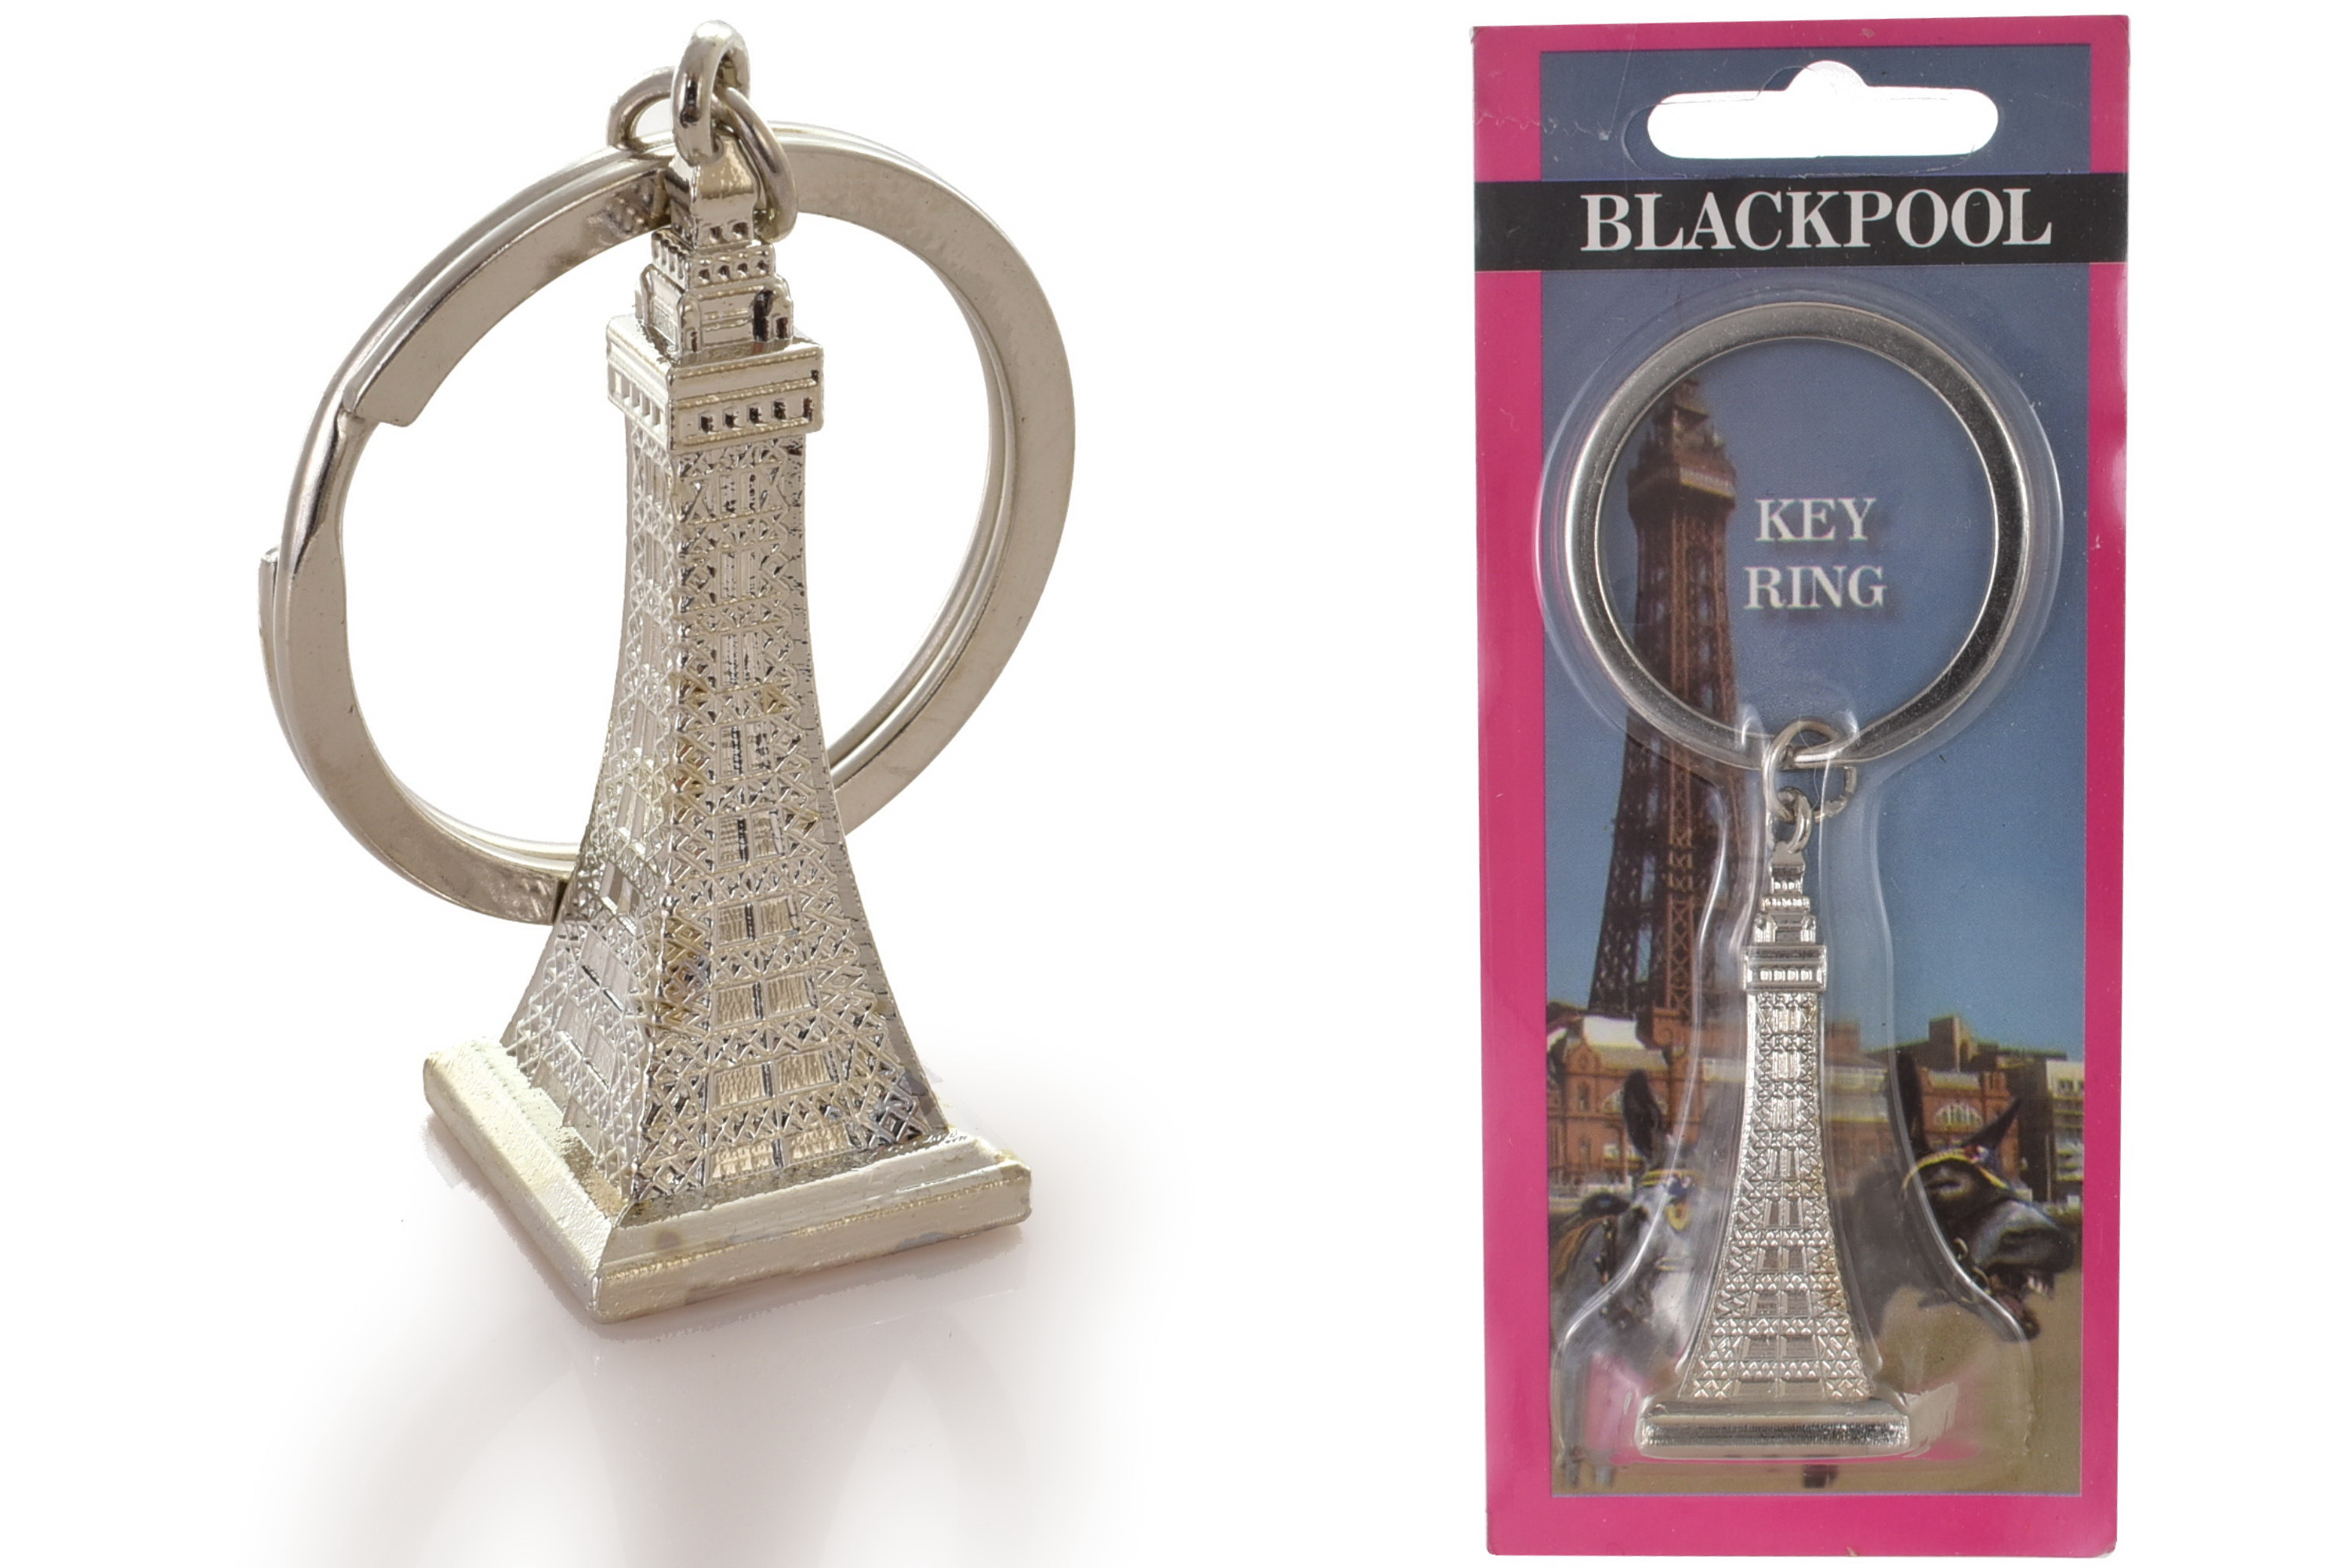 Blackpool Keyring Silver Tower Carded